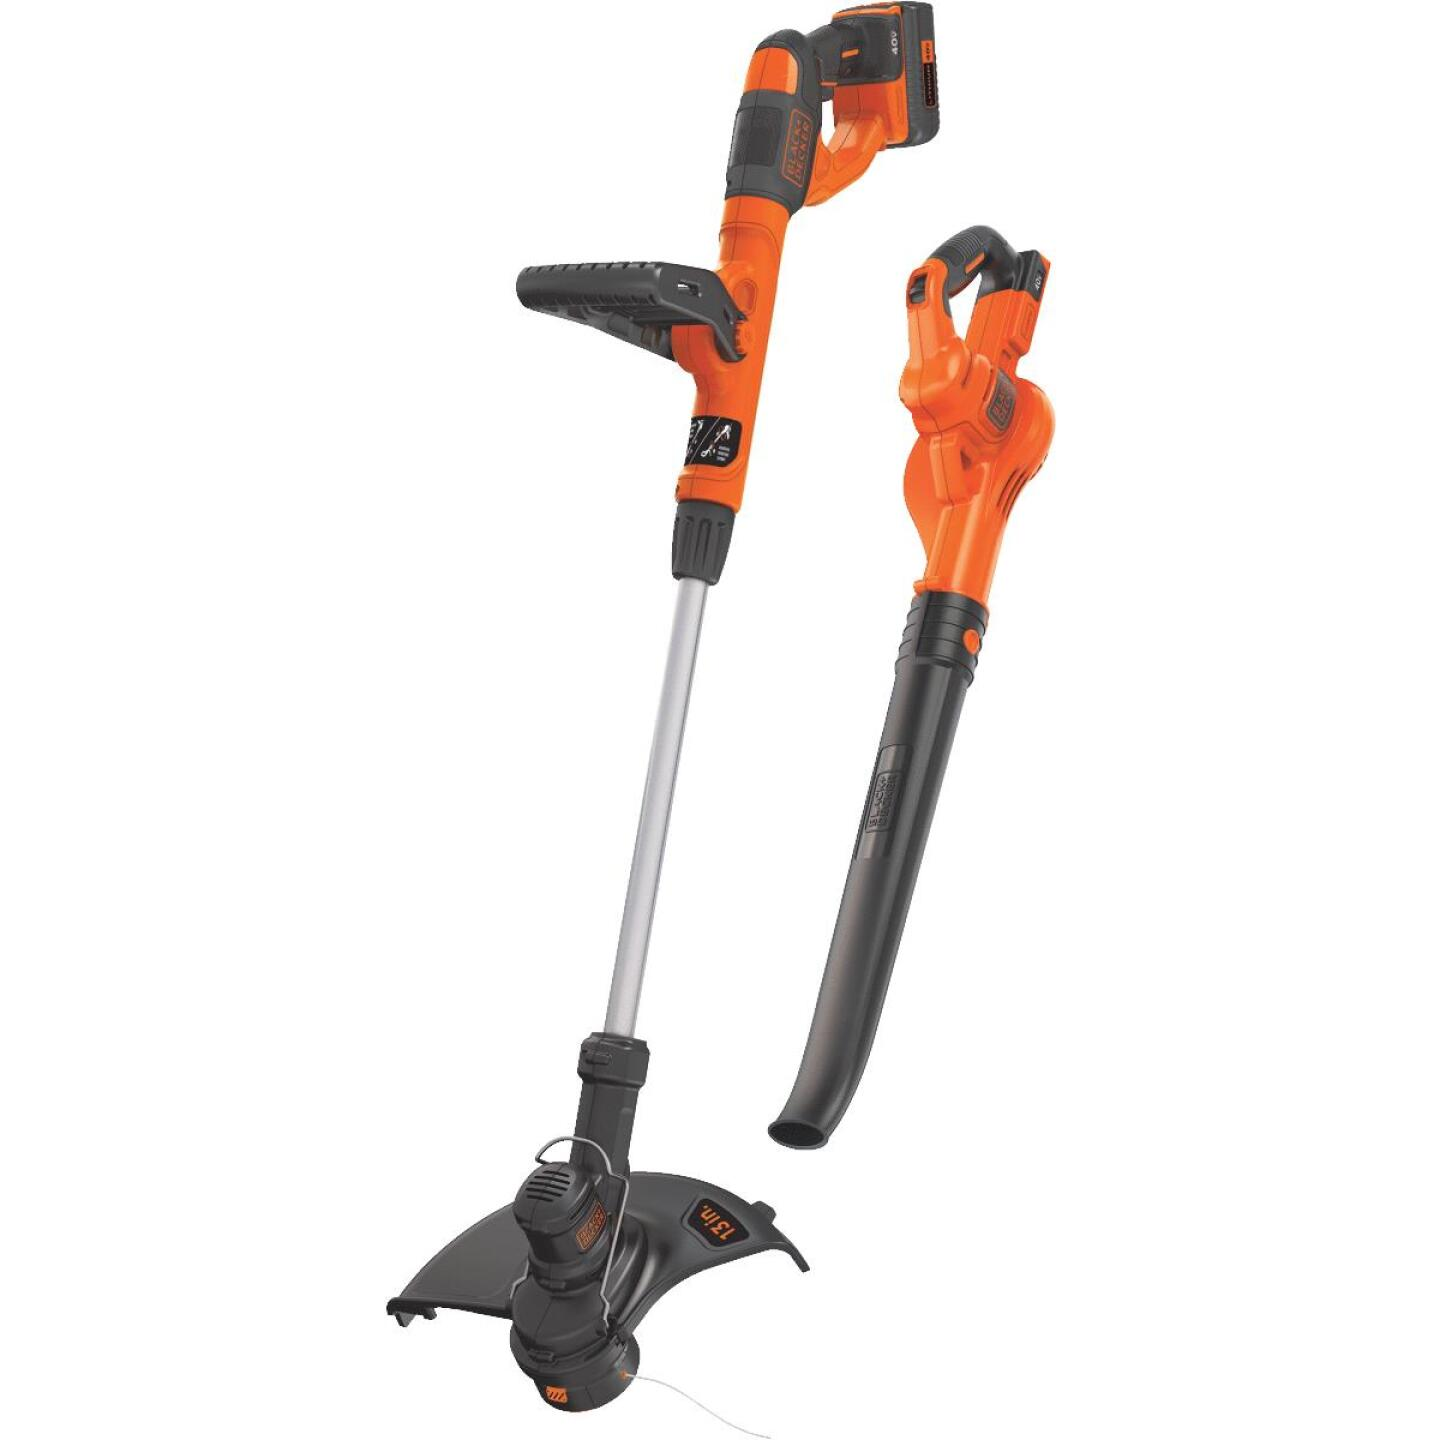 Black & Decker Max 40V String Trimmer & Sweeper Combo Kit Image 1